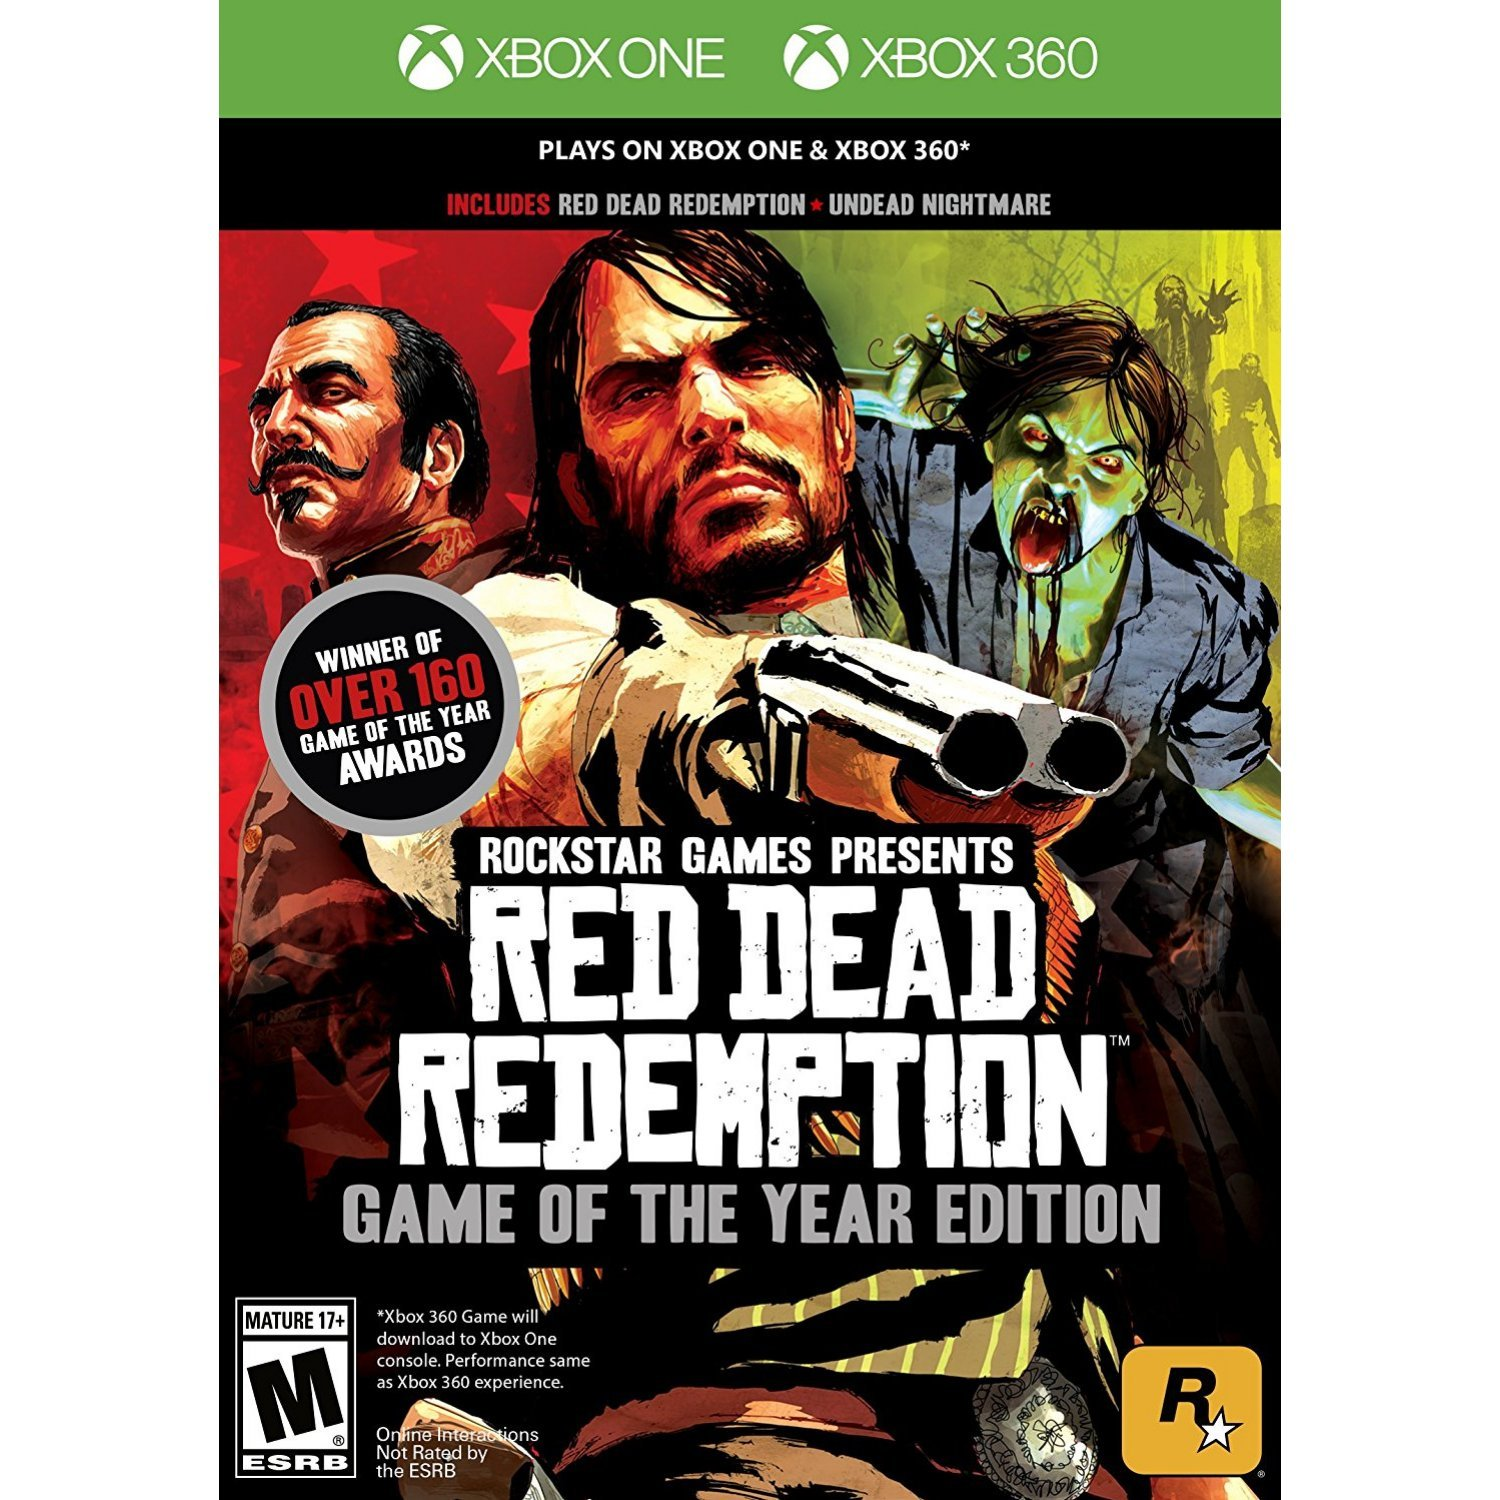 Red dead redemption game of the year edition (xbox one/xbox 360.